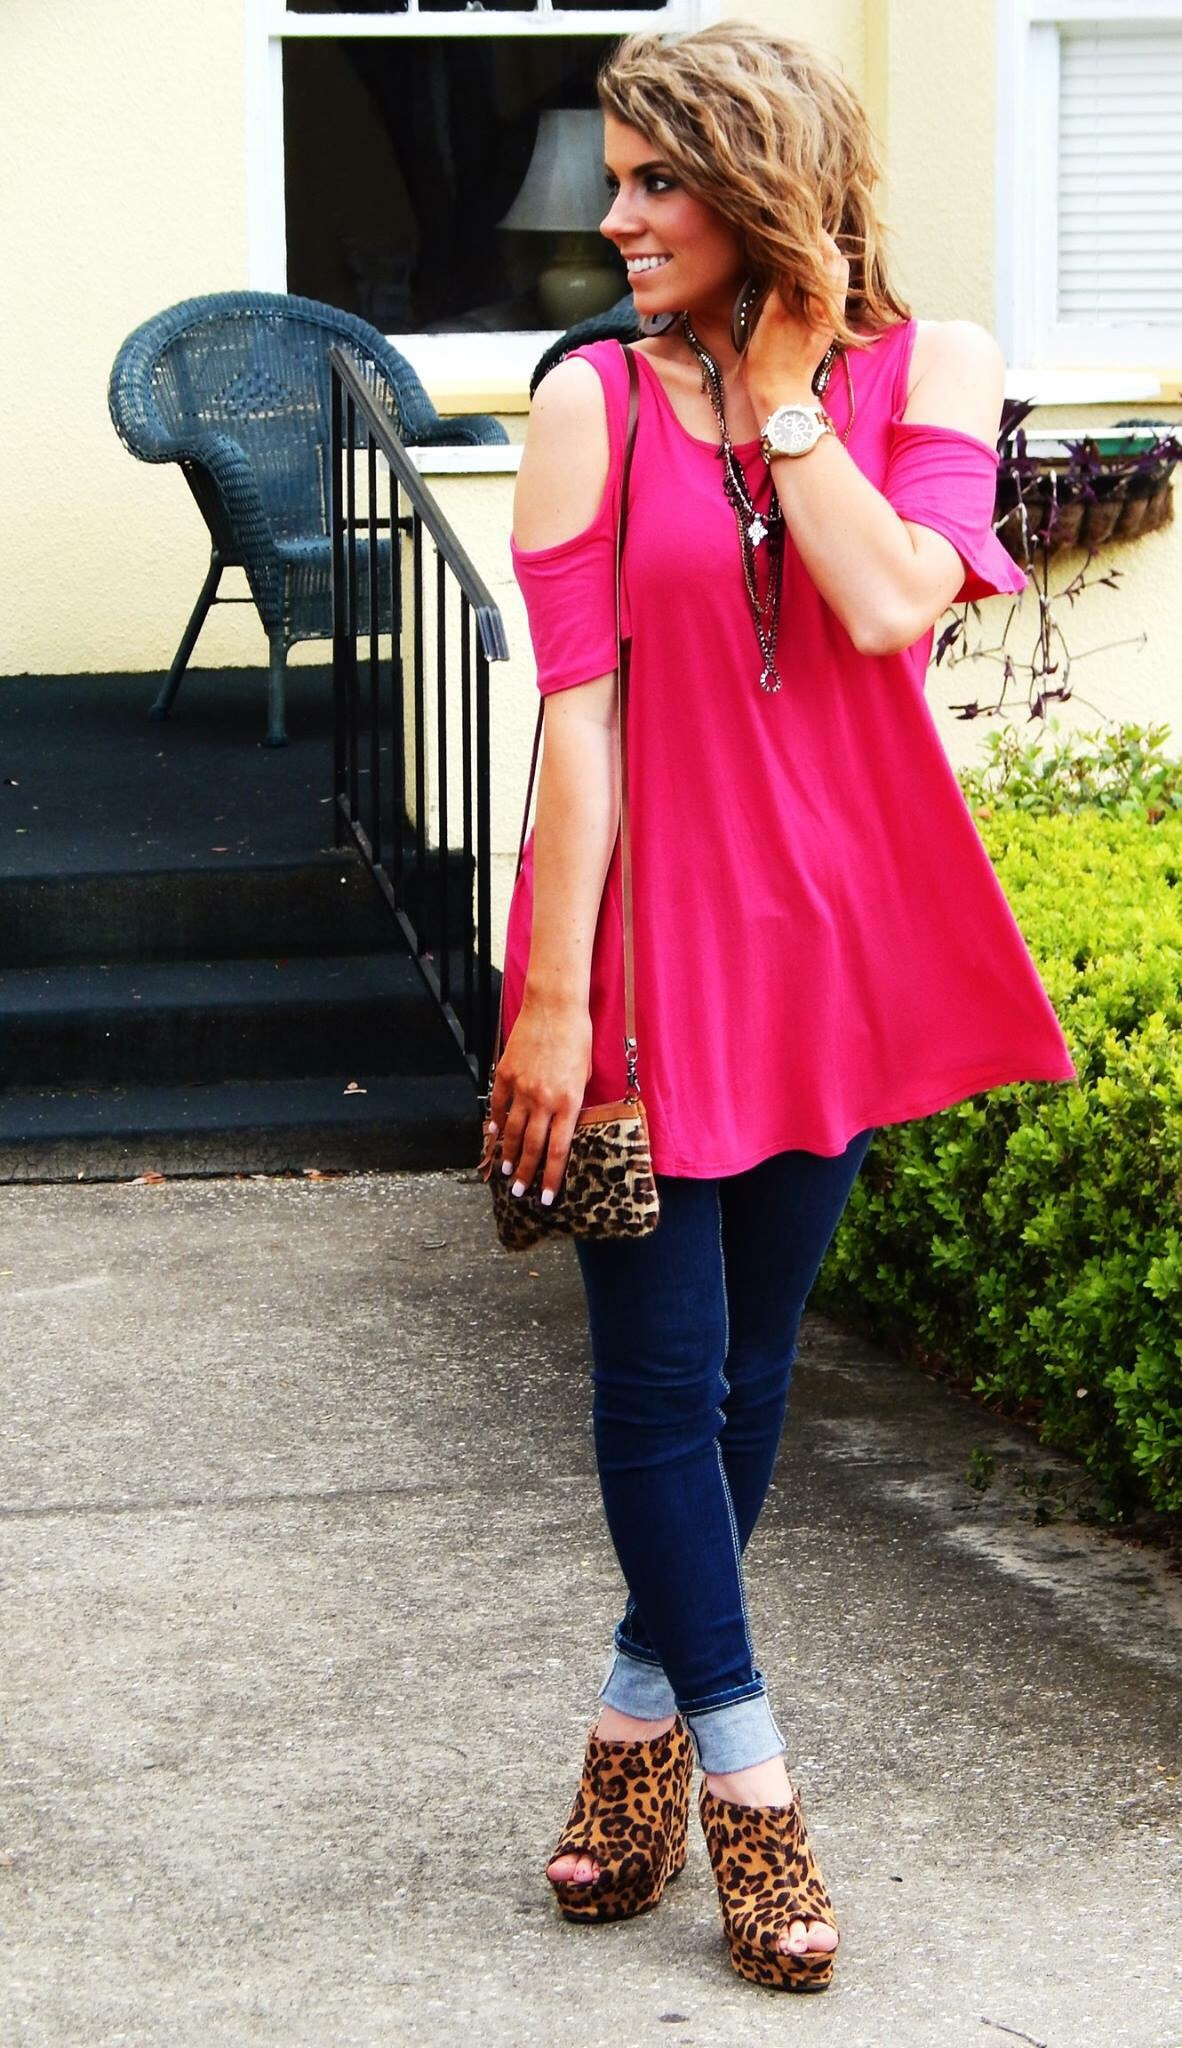 Look - How to pink a hot wear top video